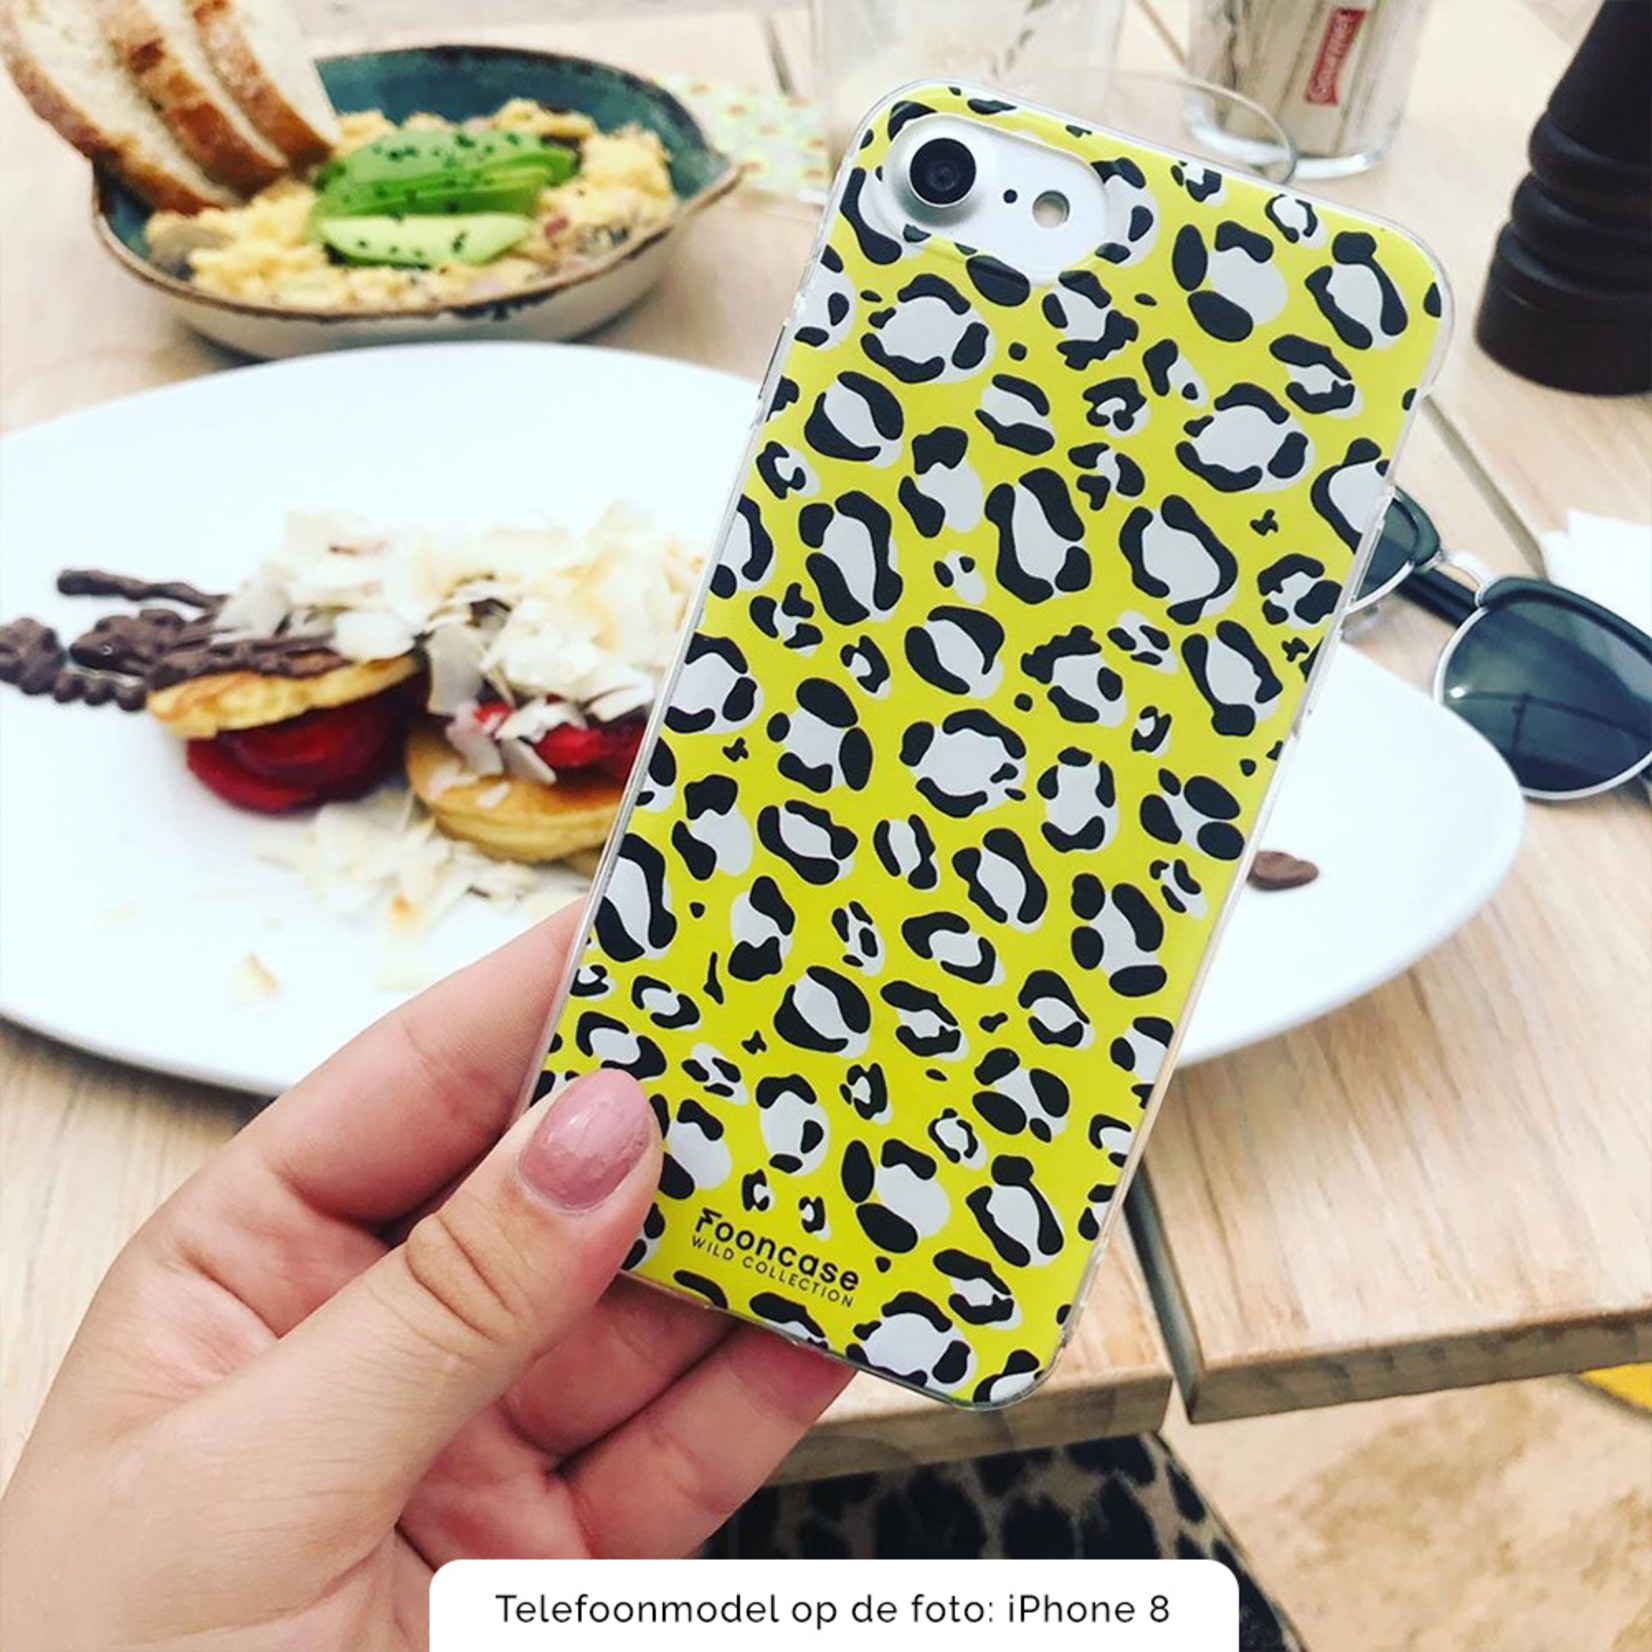 FOONCASE iPhone 11 Pro Max hoesje TPU Soft Case - Back Cover - WILD COLLECTION / Luipaard / Leopard print / Geel